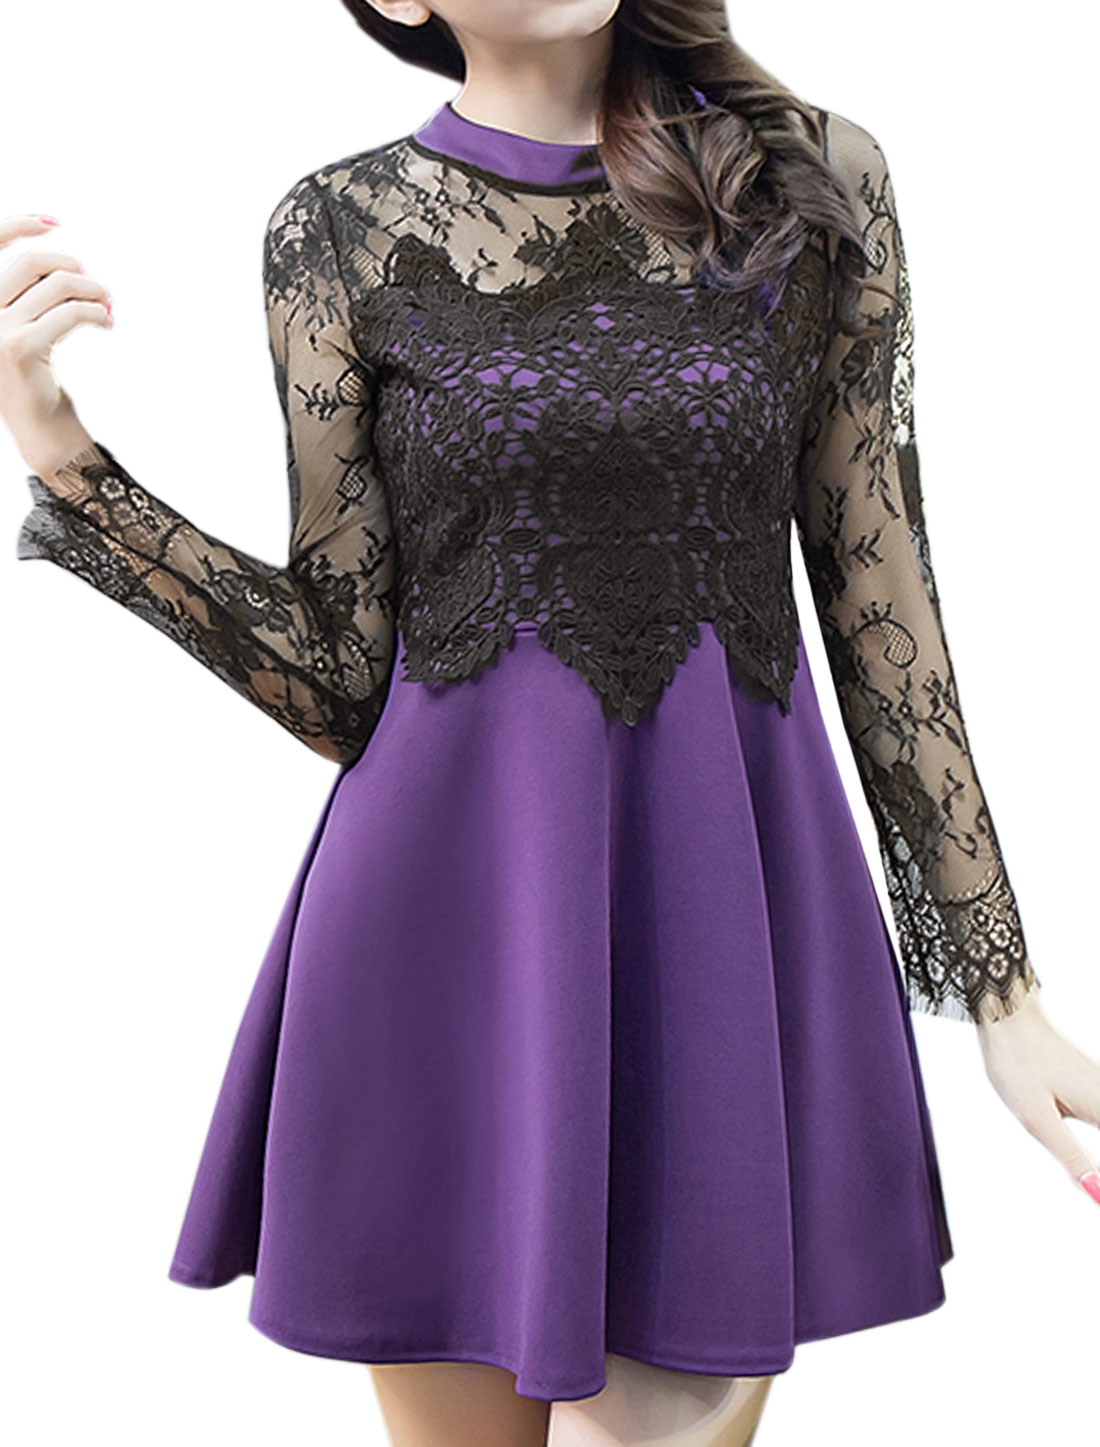 Women Floral Mesh Crochet See Through Flare Dress Purple S